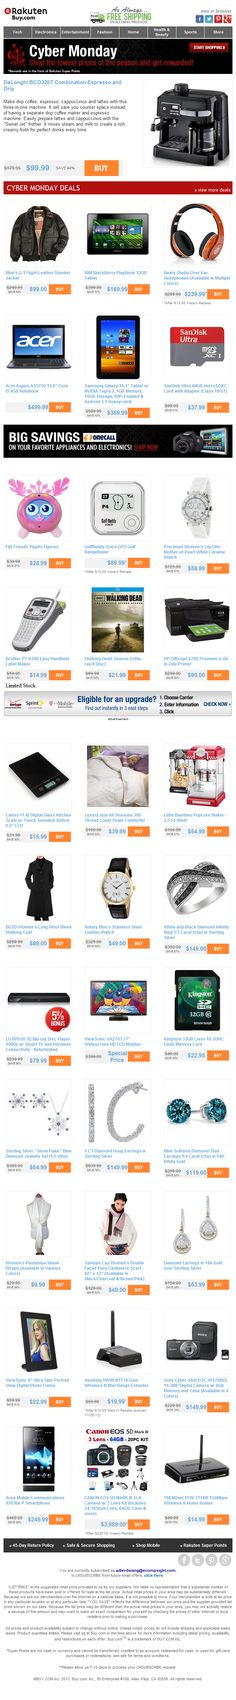 40 Cyber Monday Email Design Gallery Ideas Cyber Monday Email Email Design Cyber Monday